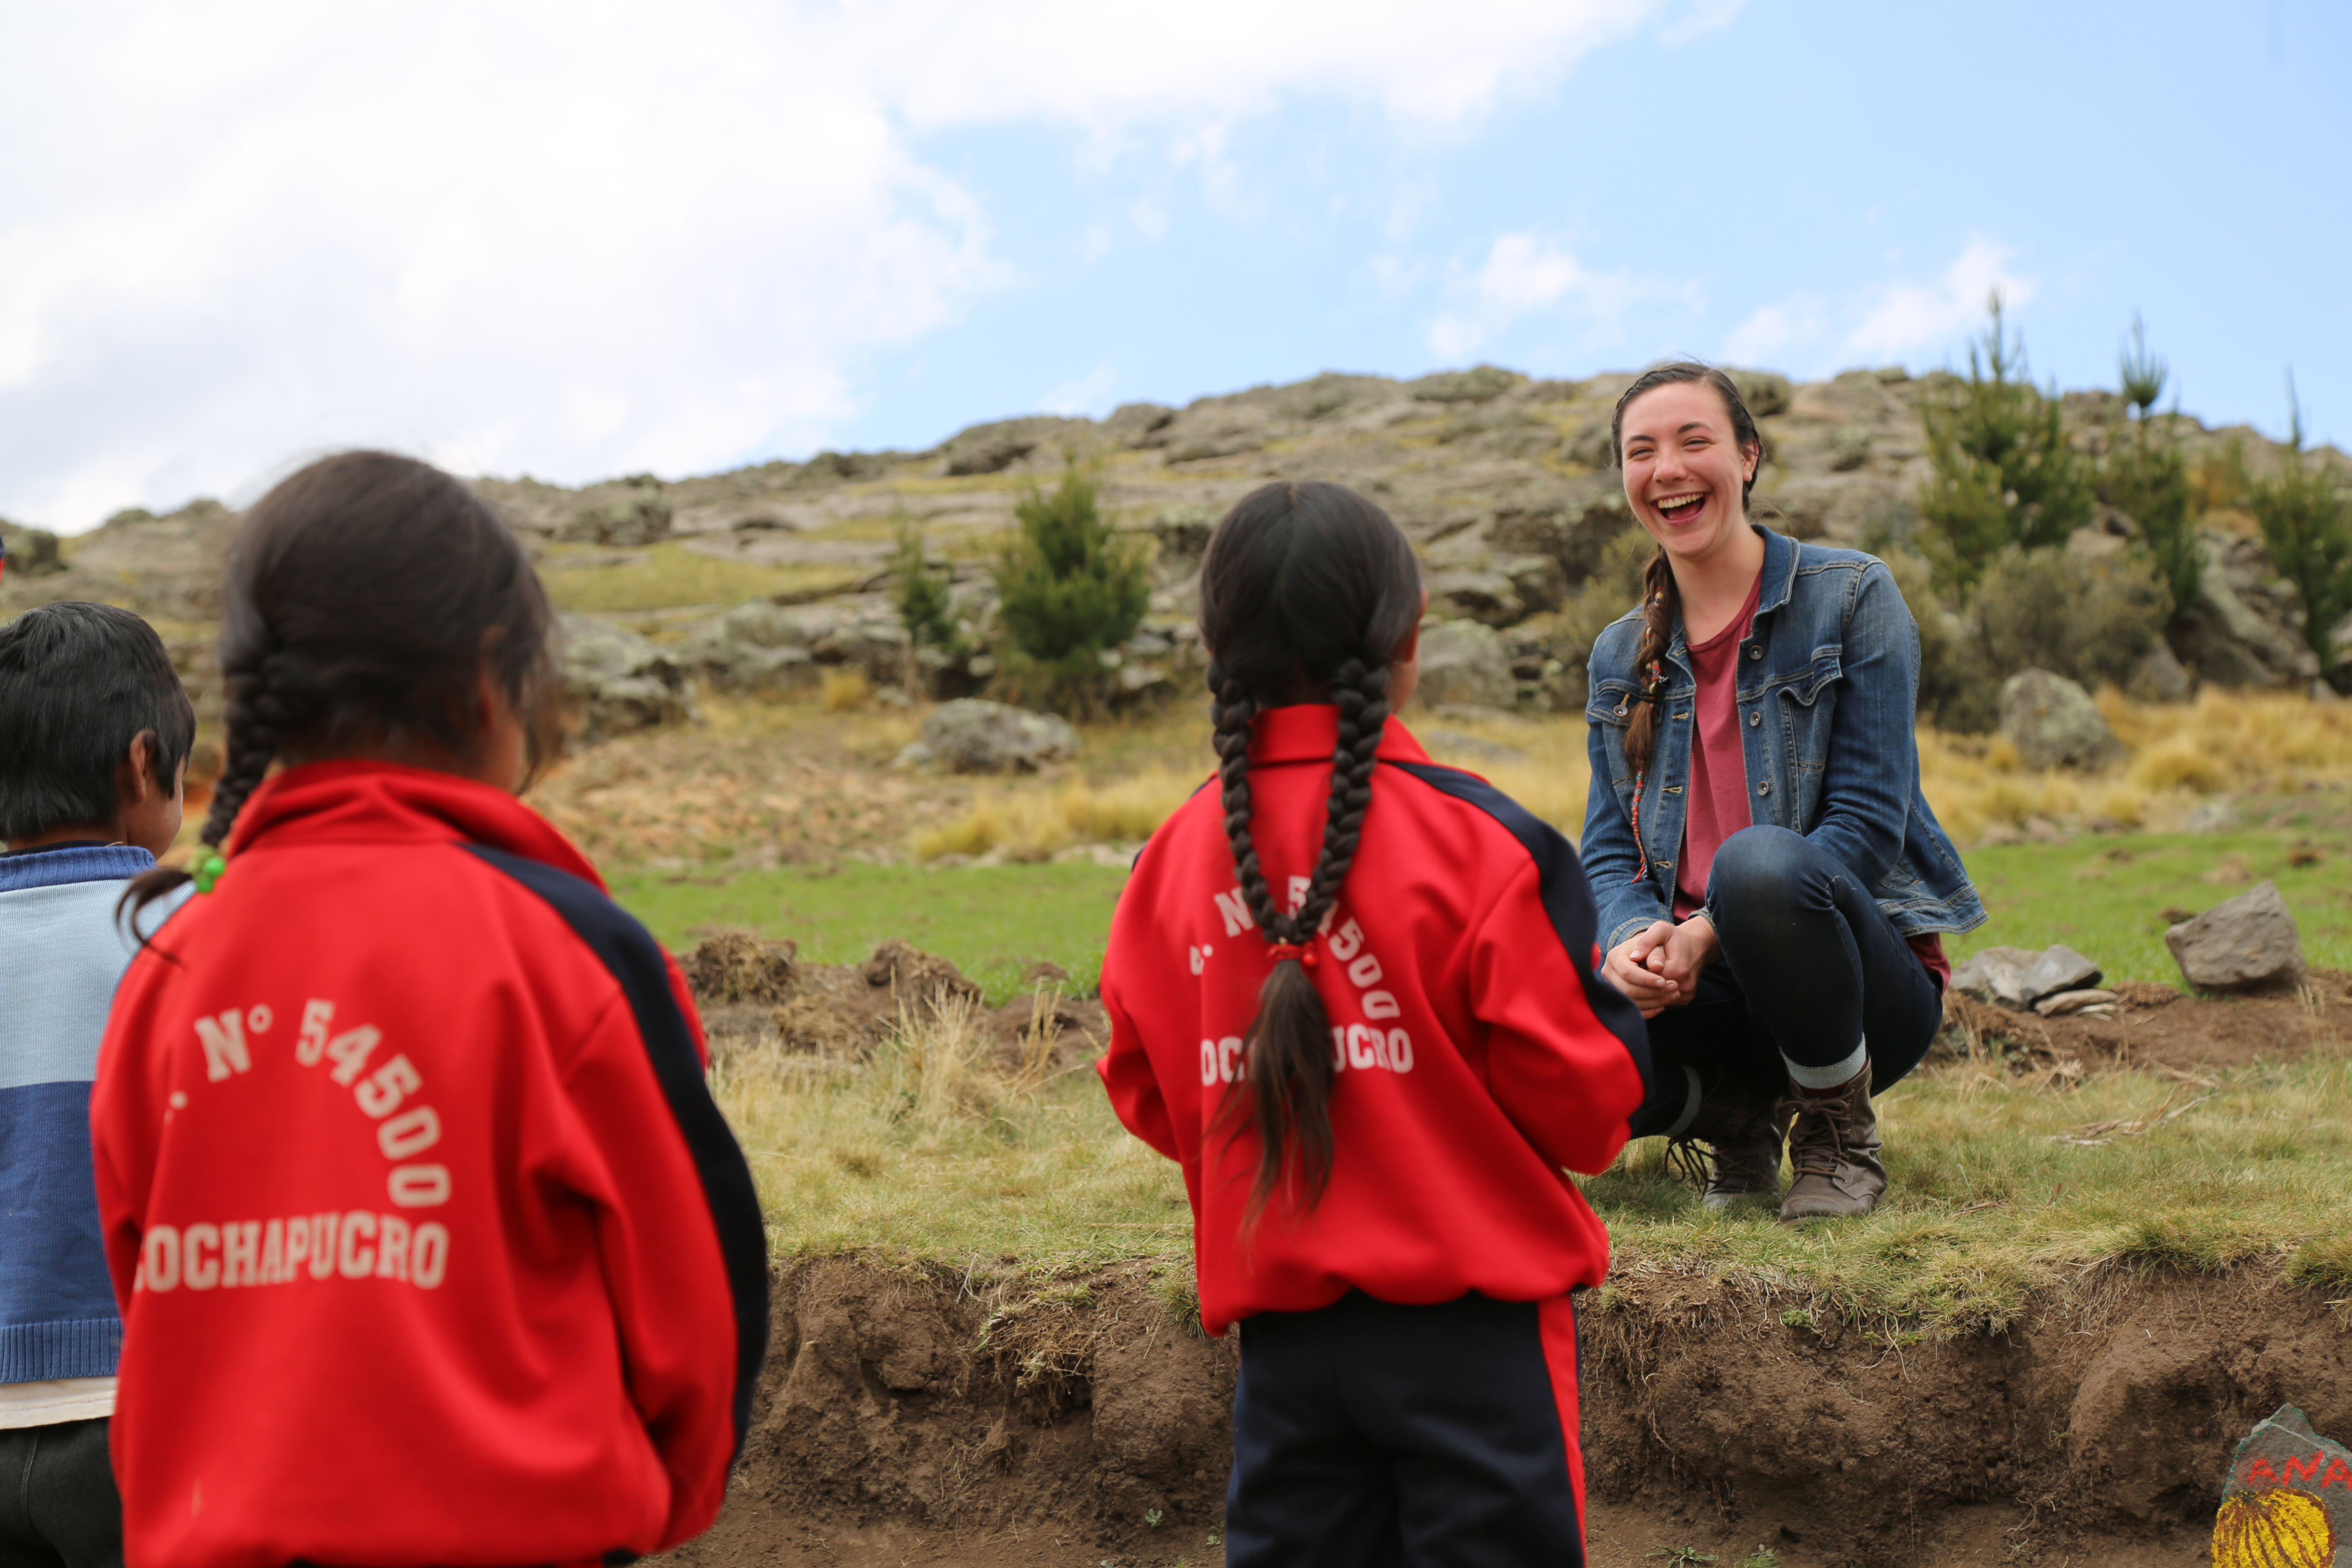 Young Adult Volunteer Alyson Miller, serving in Andahuaylas, Peru, stops to chat with school girls on her way to work. As part of their call to service, YAVs are challenged throughout the year to identify the many privileges they have and the ways they can work for justice and equality in the world.